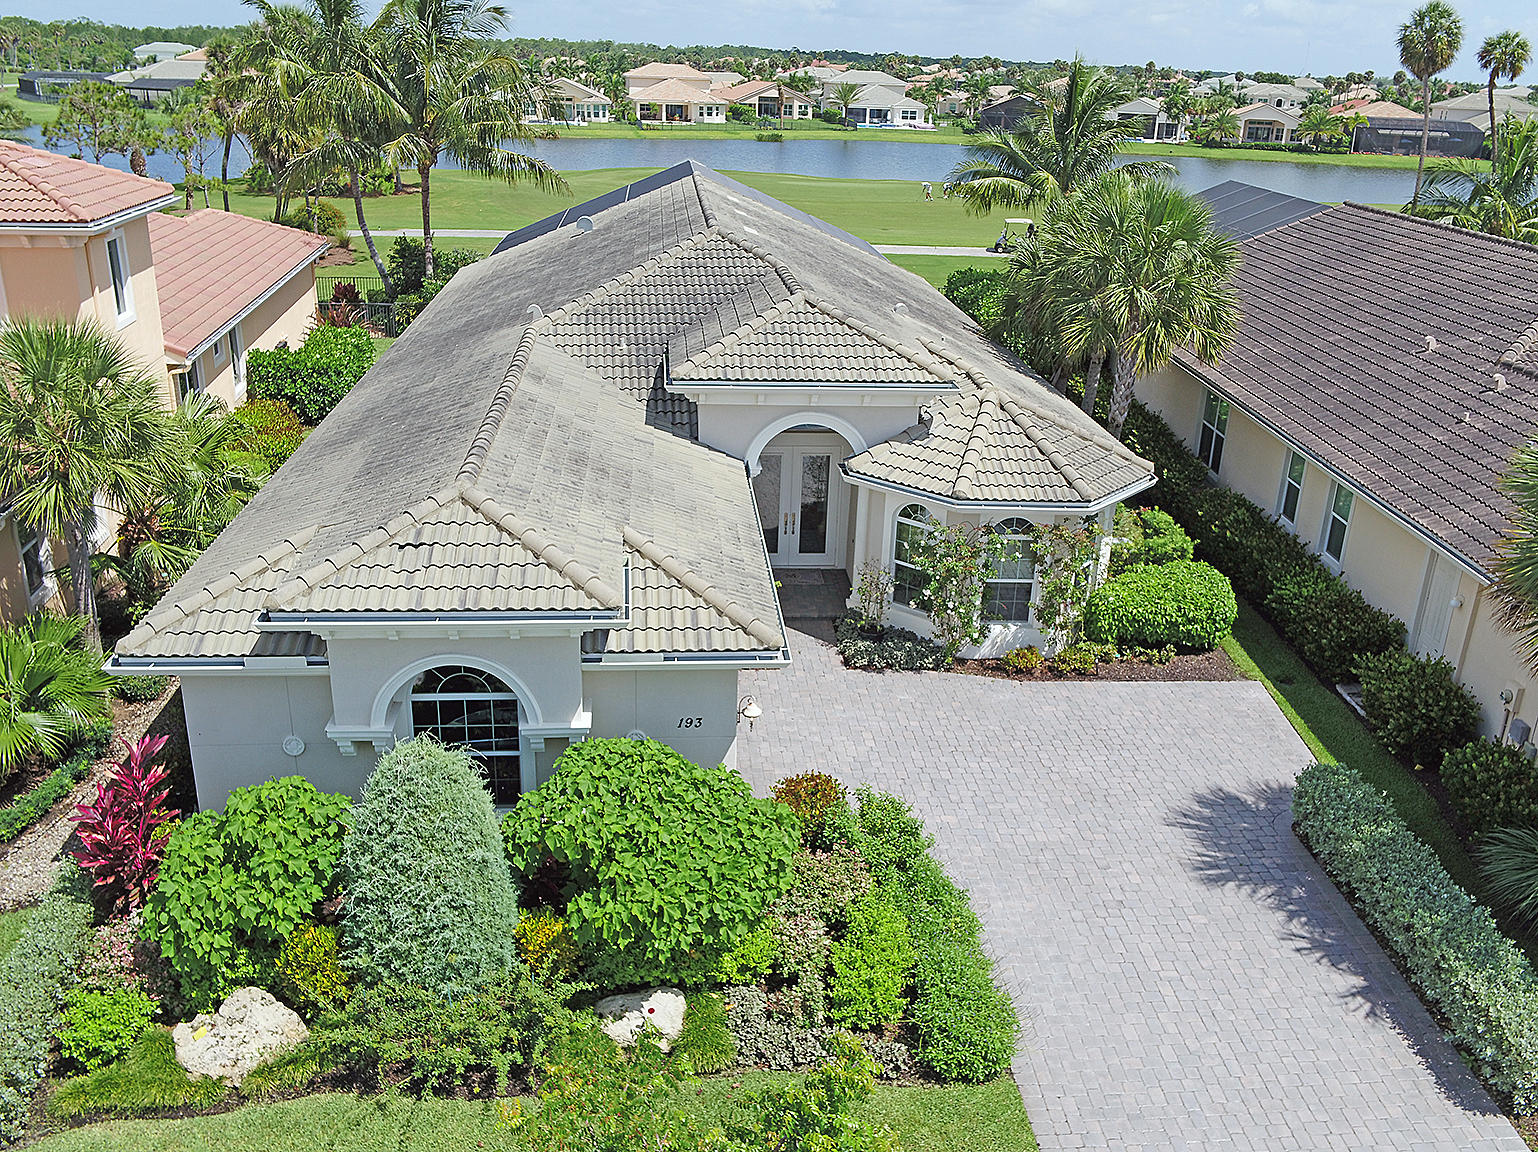 New Home for sale at 193 Carina Drive in Jupiter